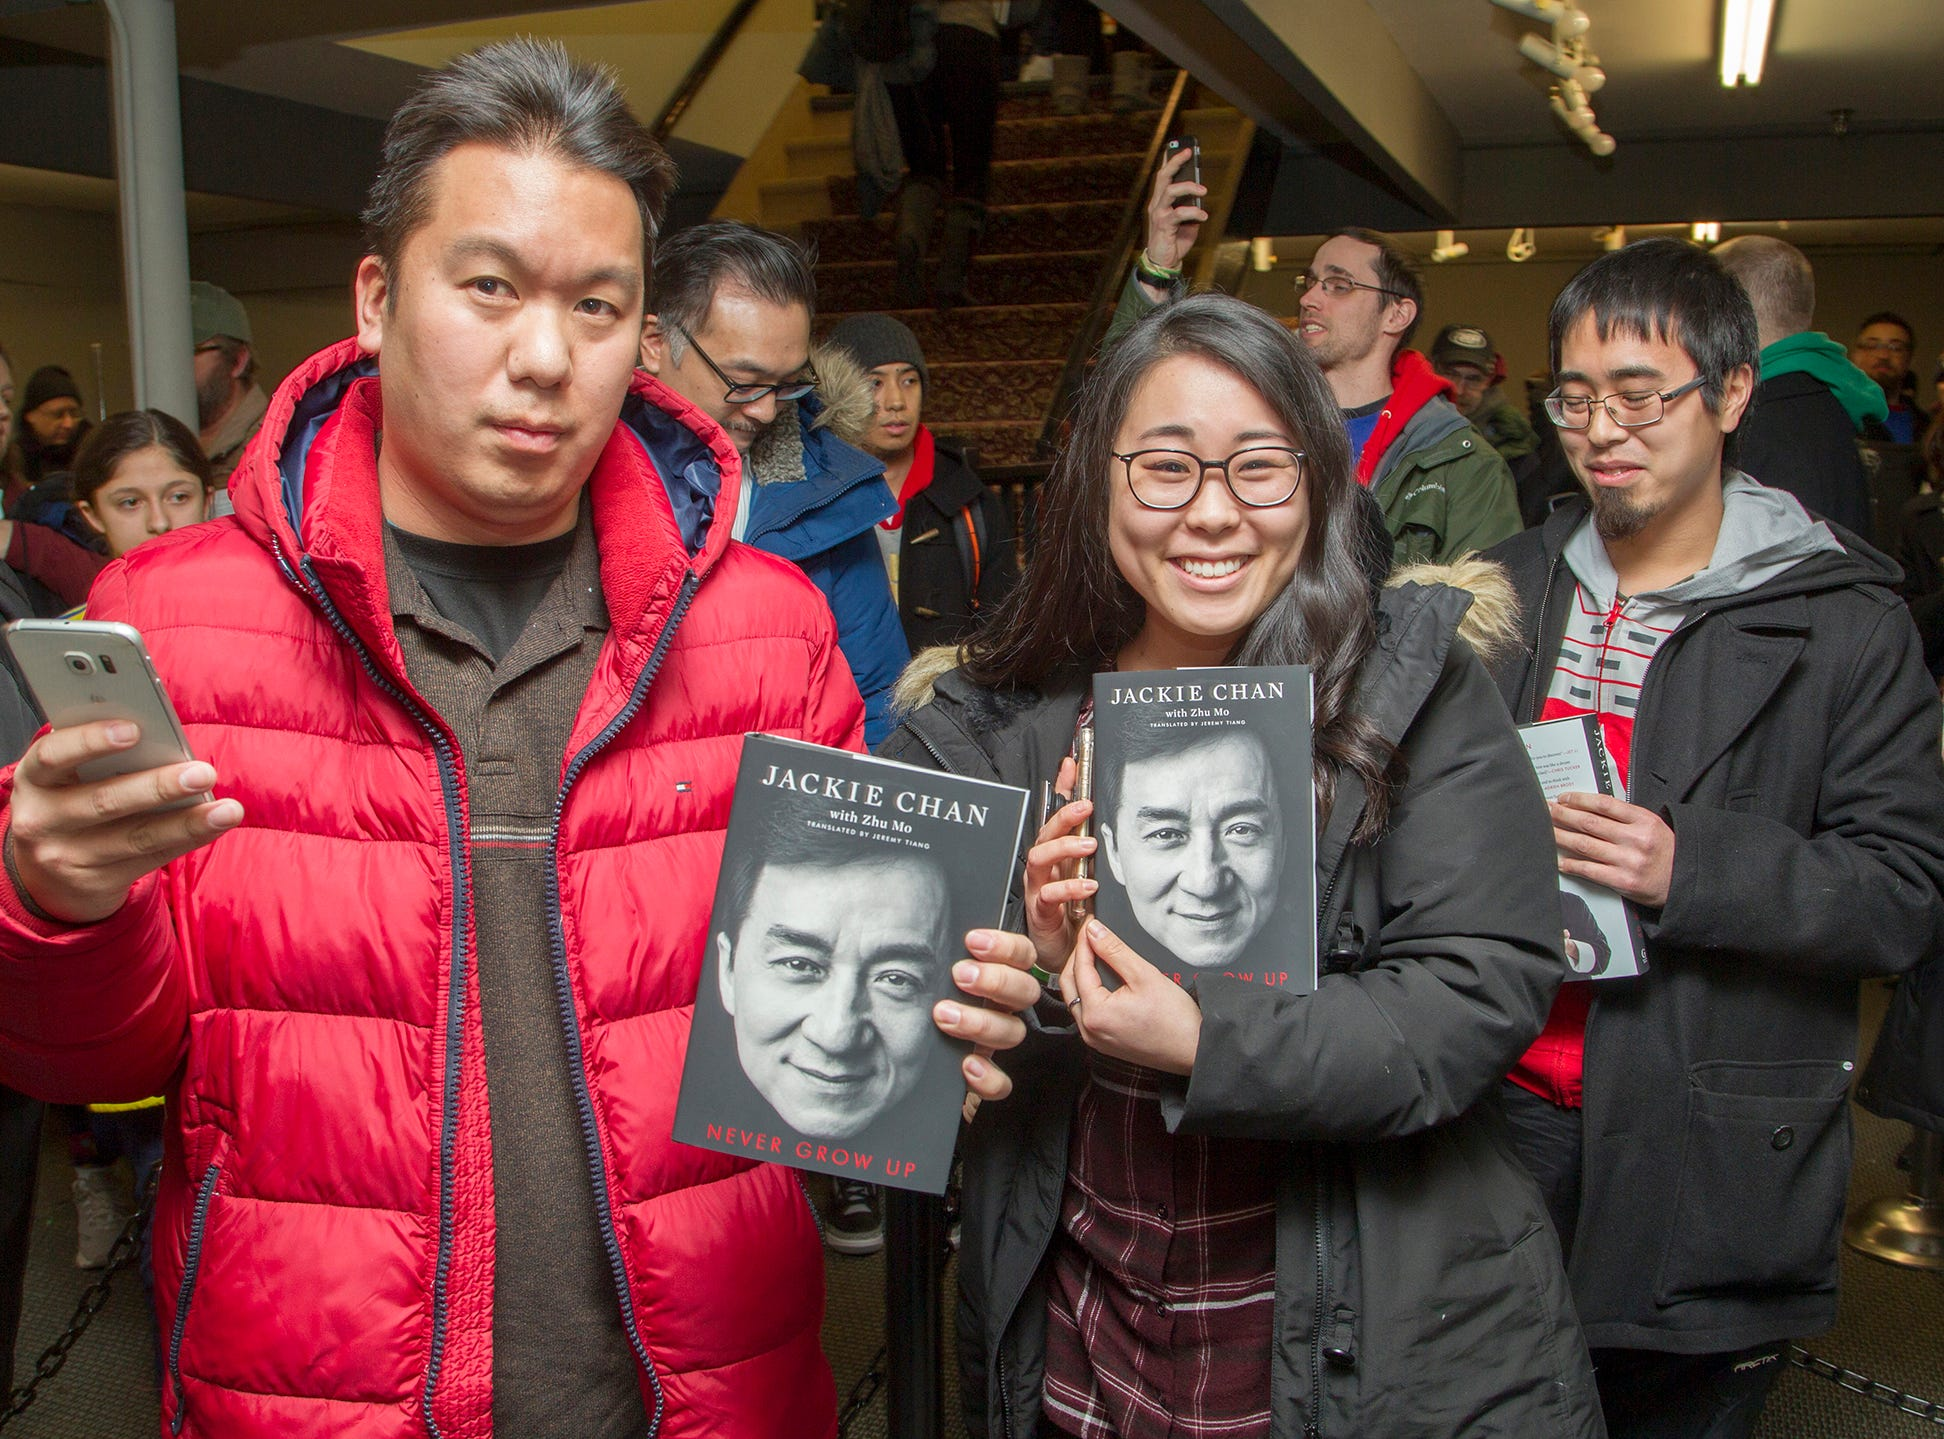 """Calvin and Linda. Jackie Chan greets fans at Bookends in Ridgewood while signing his new book, """"Never Grow Up."""" 01/21/2019"""